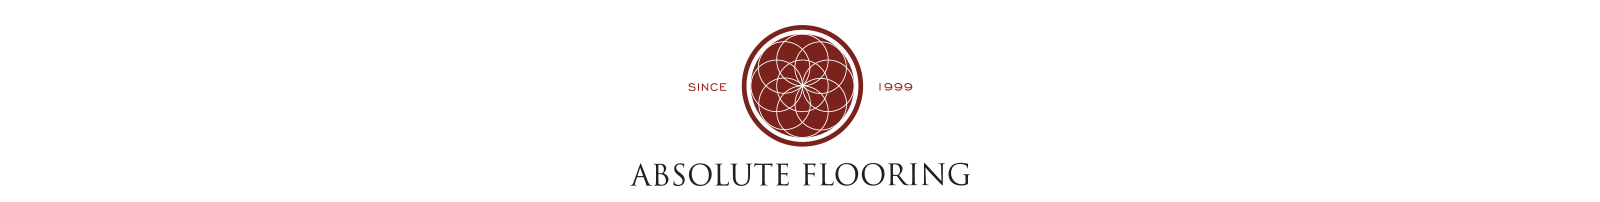 Absolute Flooring Logo